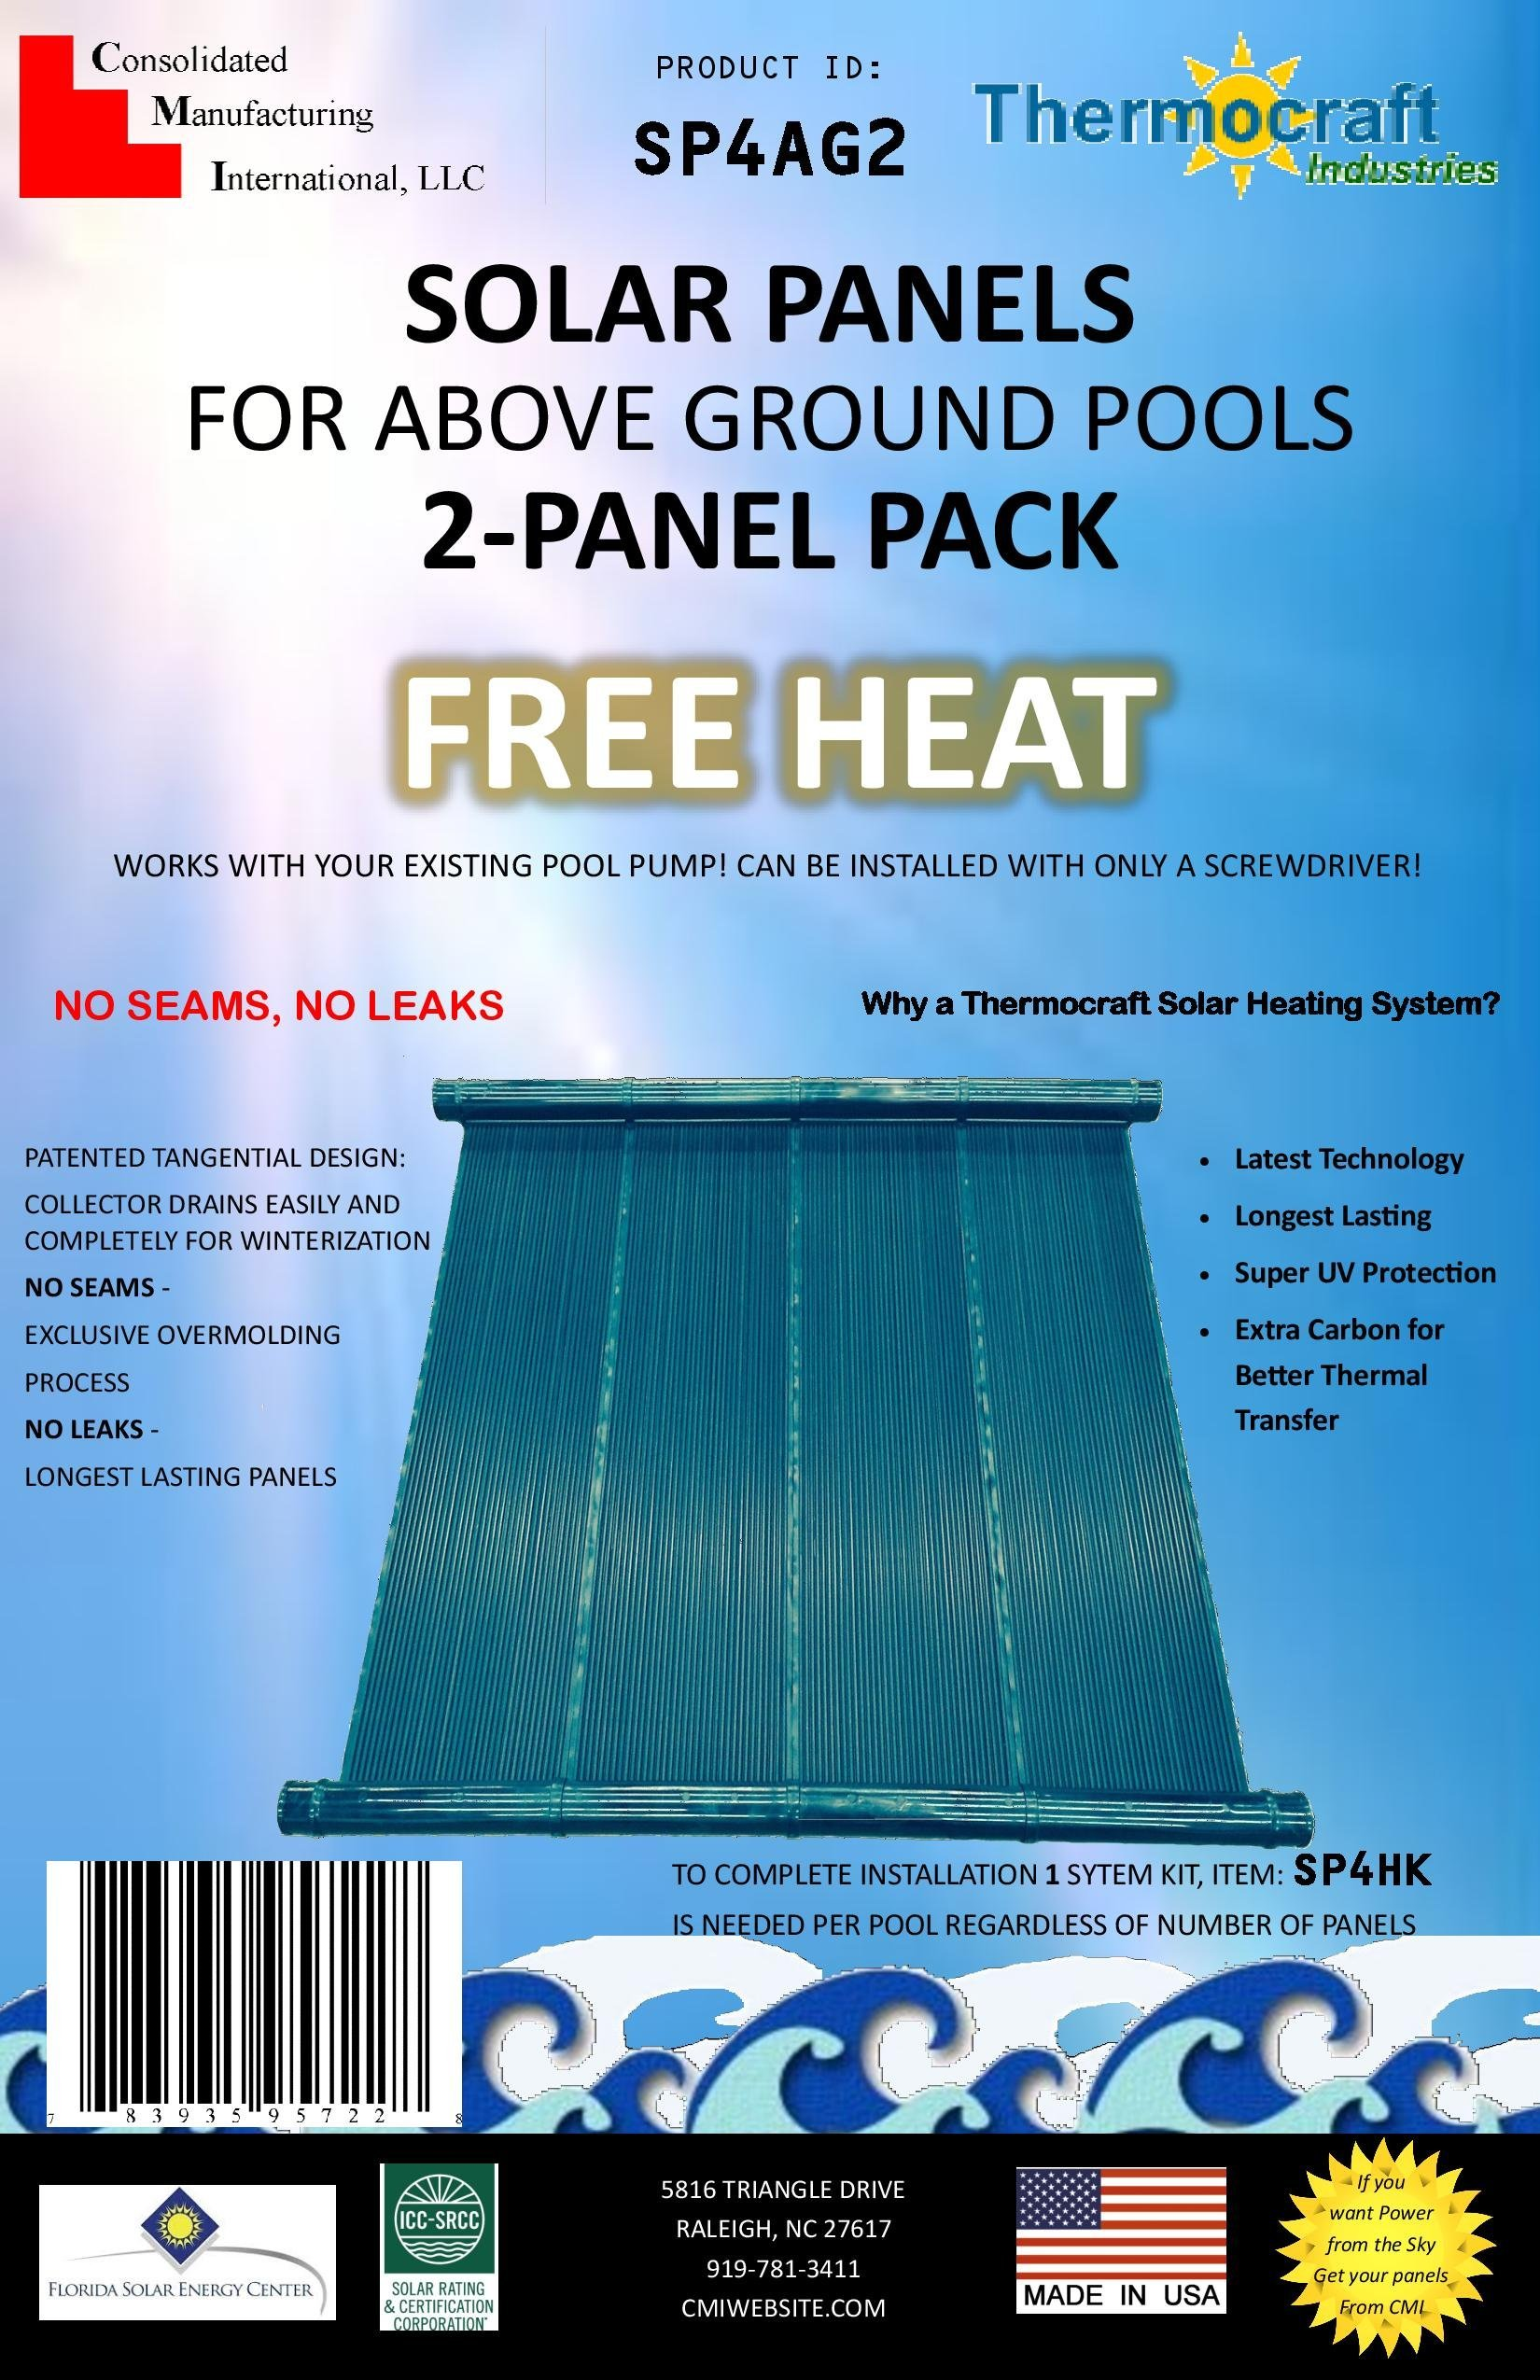 Thermocraft Solar Panels for Above Ground Pools, 2 Panel Pack